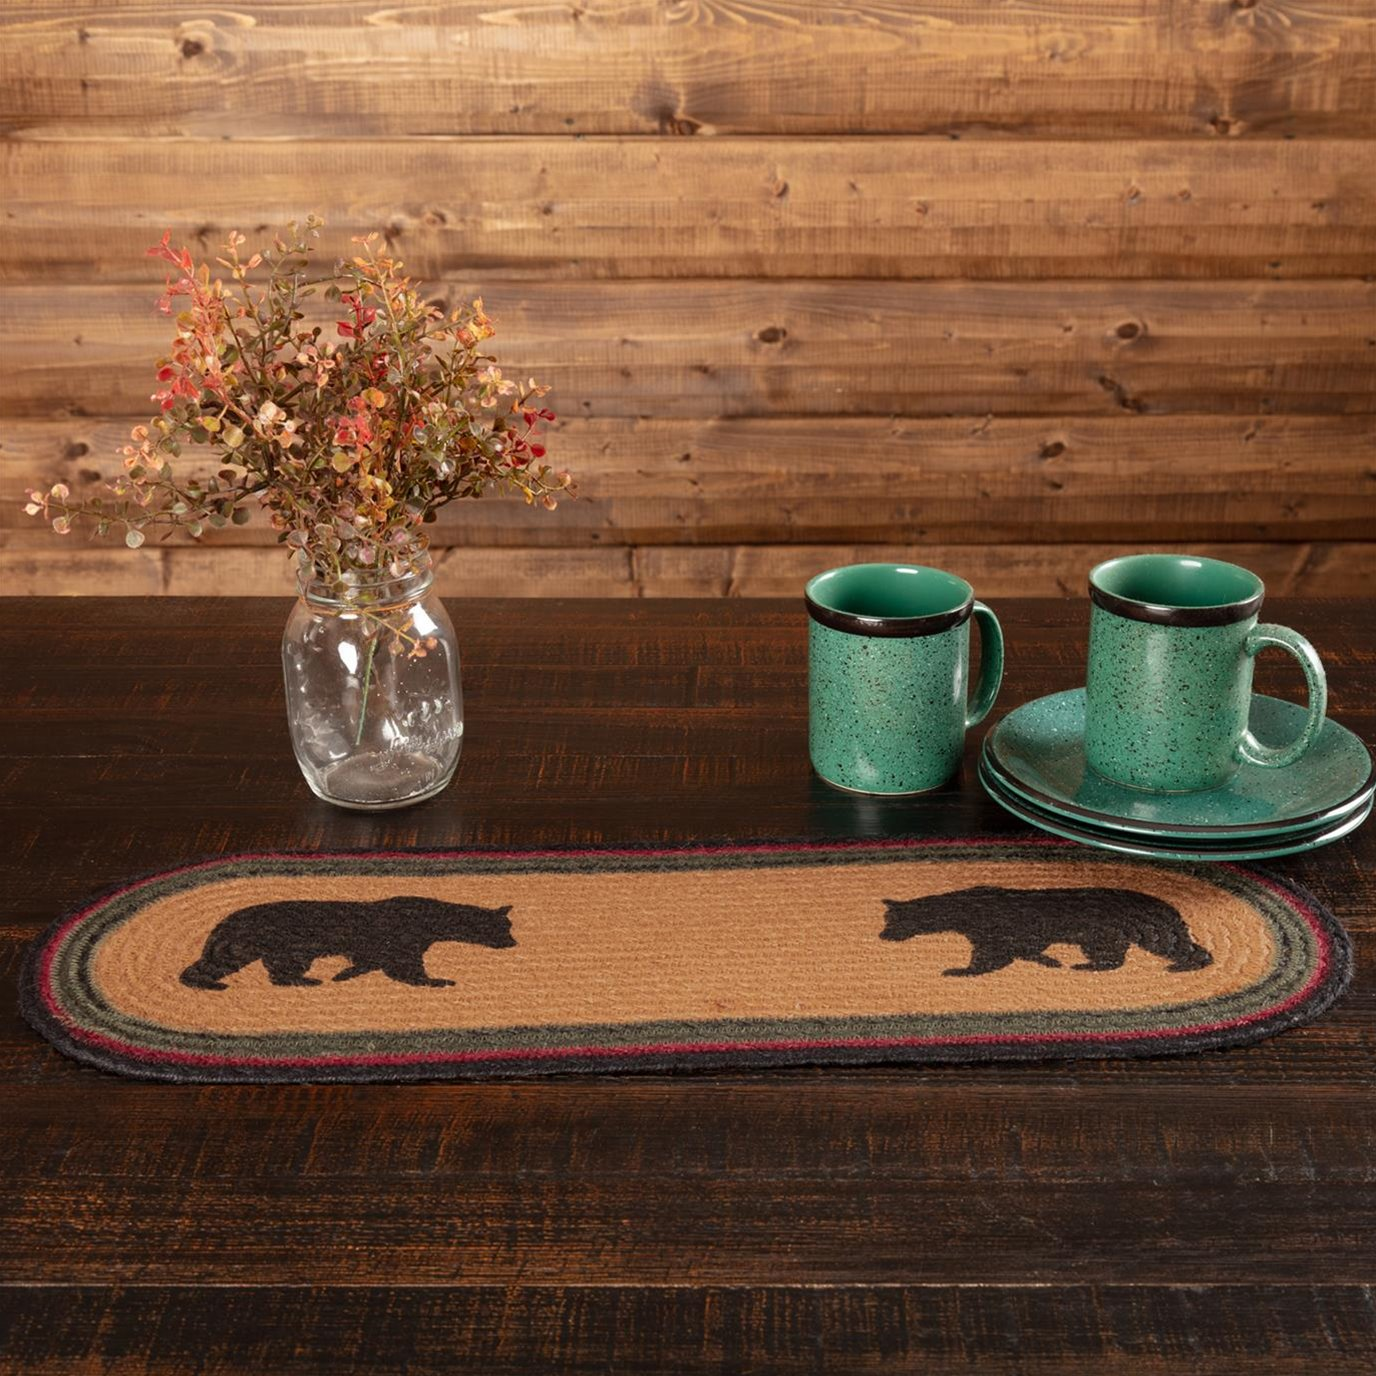 Wyatt Stenciled Bear Jute Runner 8x24